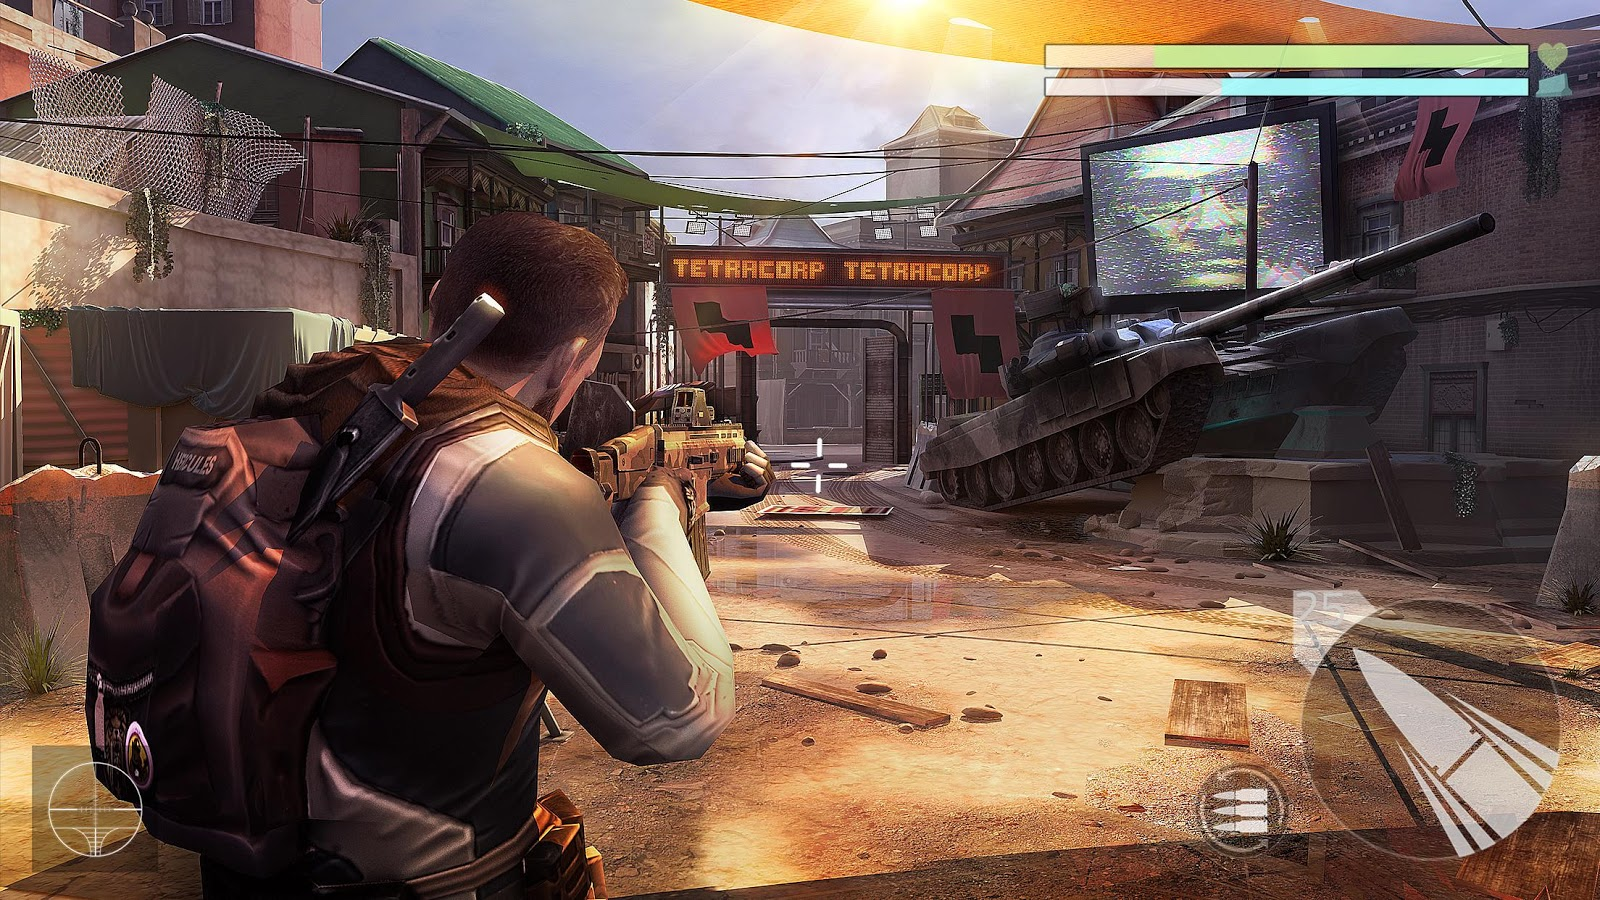 Cover Fire: shooting games v1.7.15 Mod